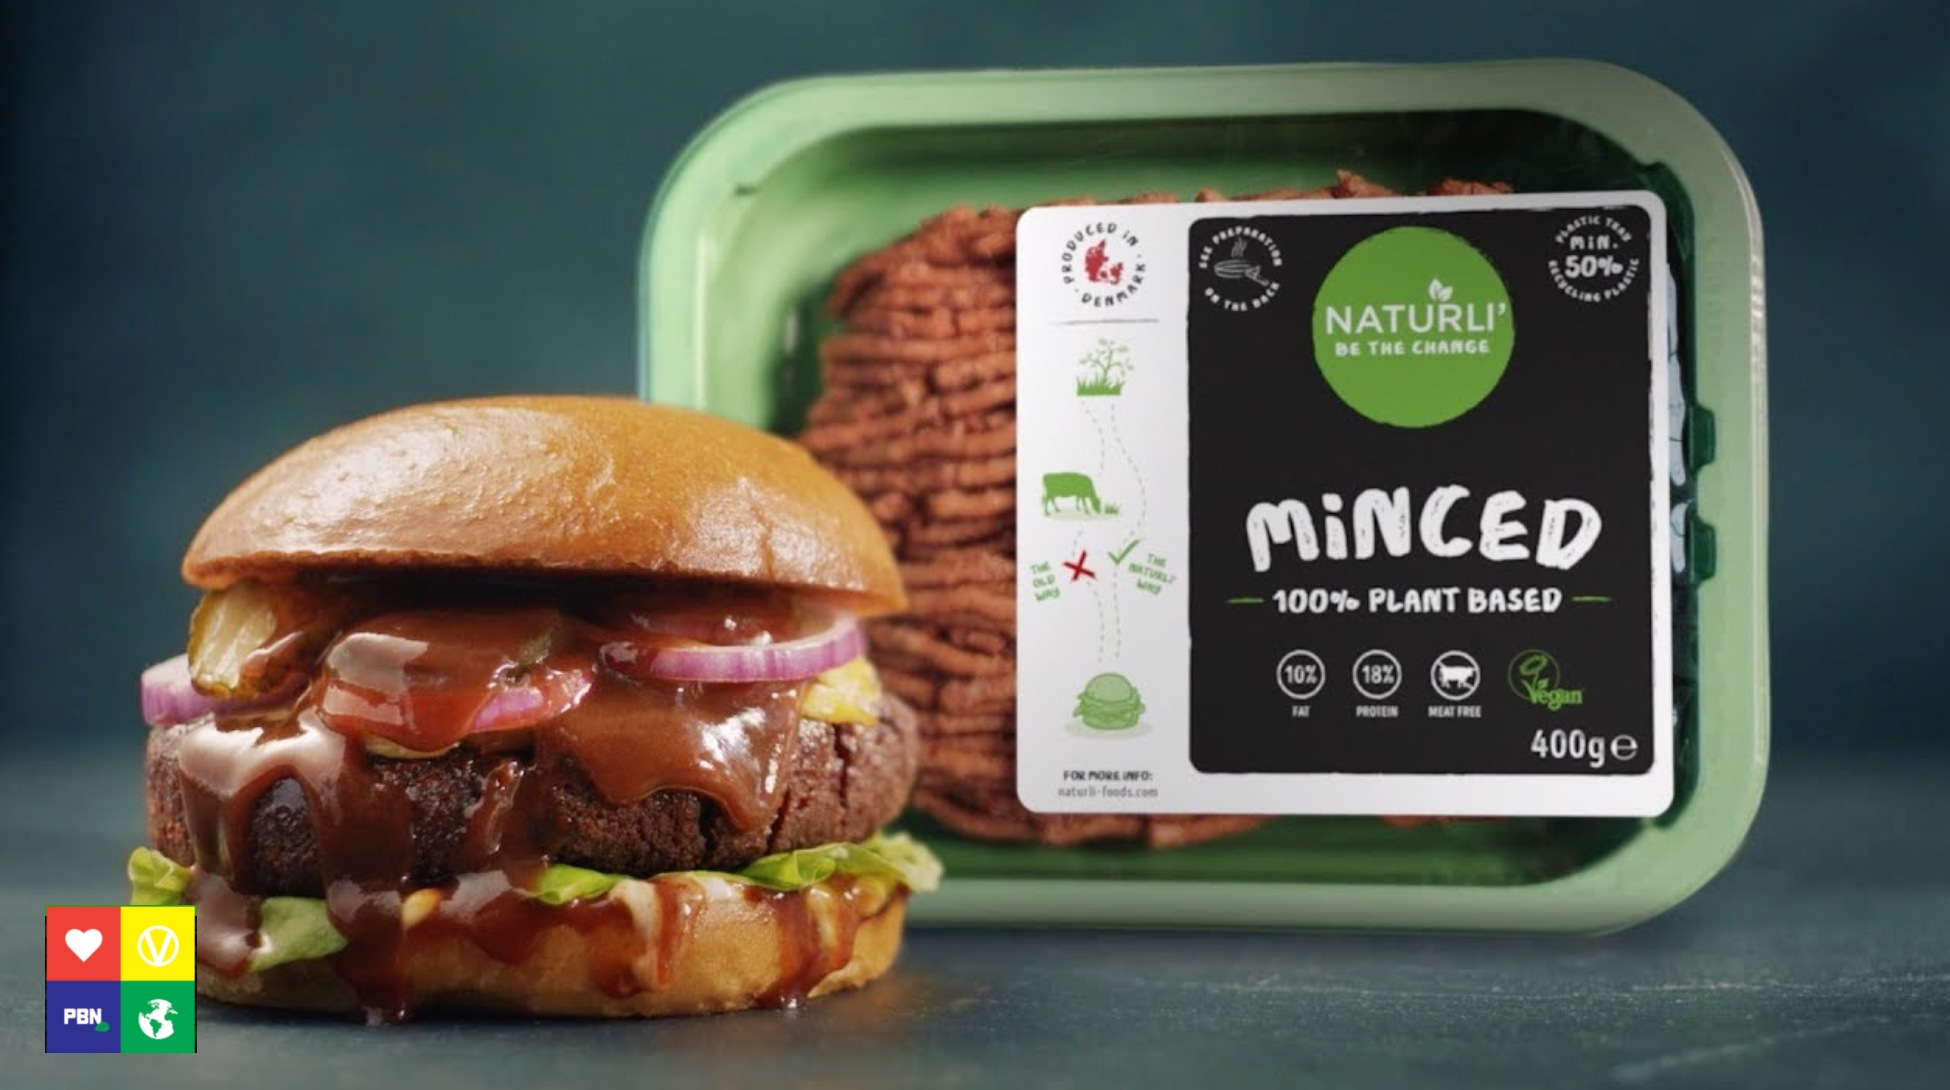 Vegan mince and burger from Naturli Foods